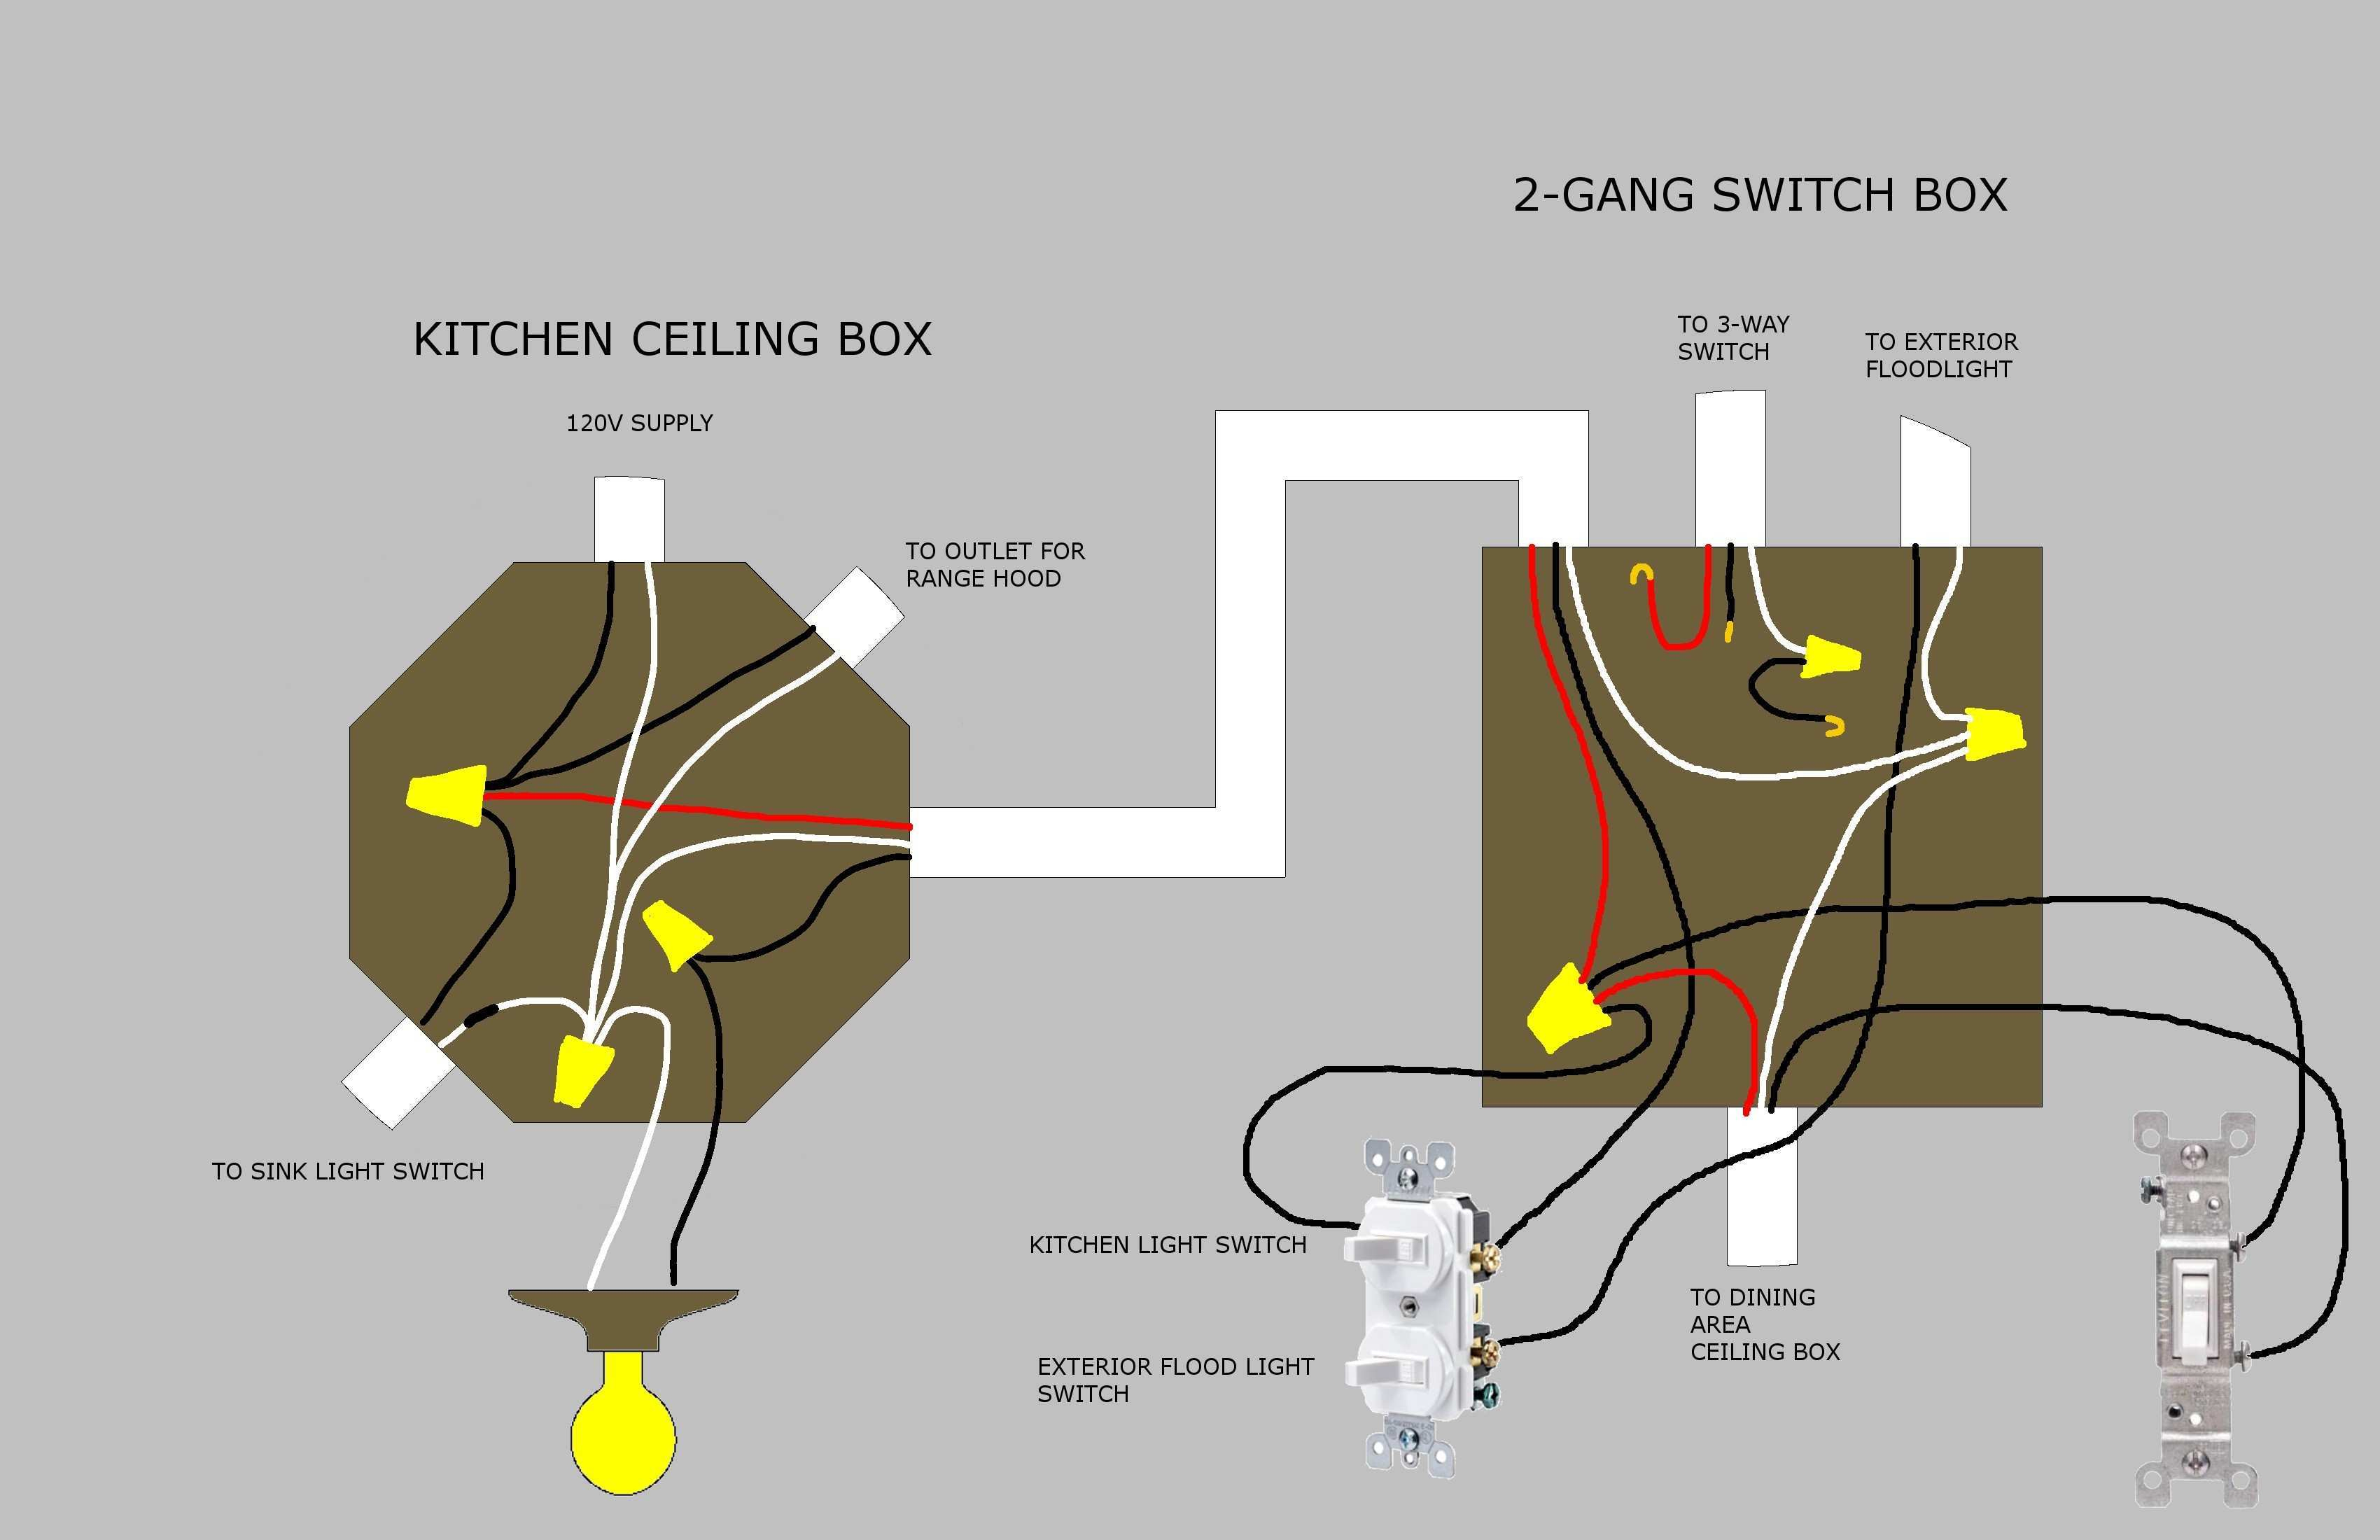 3 Way Switch Ceiling Fan To Capacitor Wiring Diagram | Best Wiring - 5 Wire Ceiling Fan Capacitor Wiring Diagram